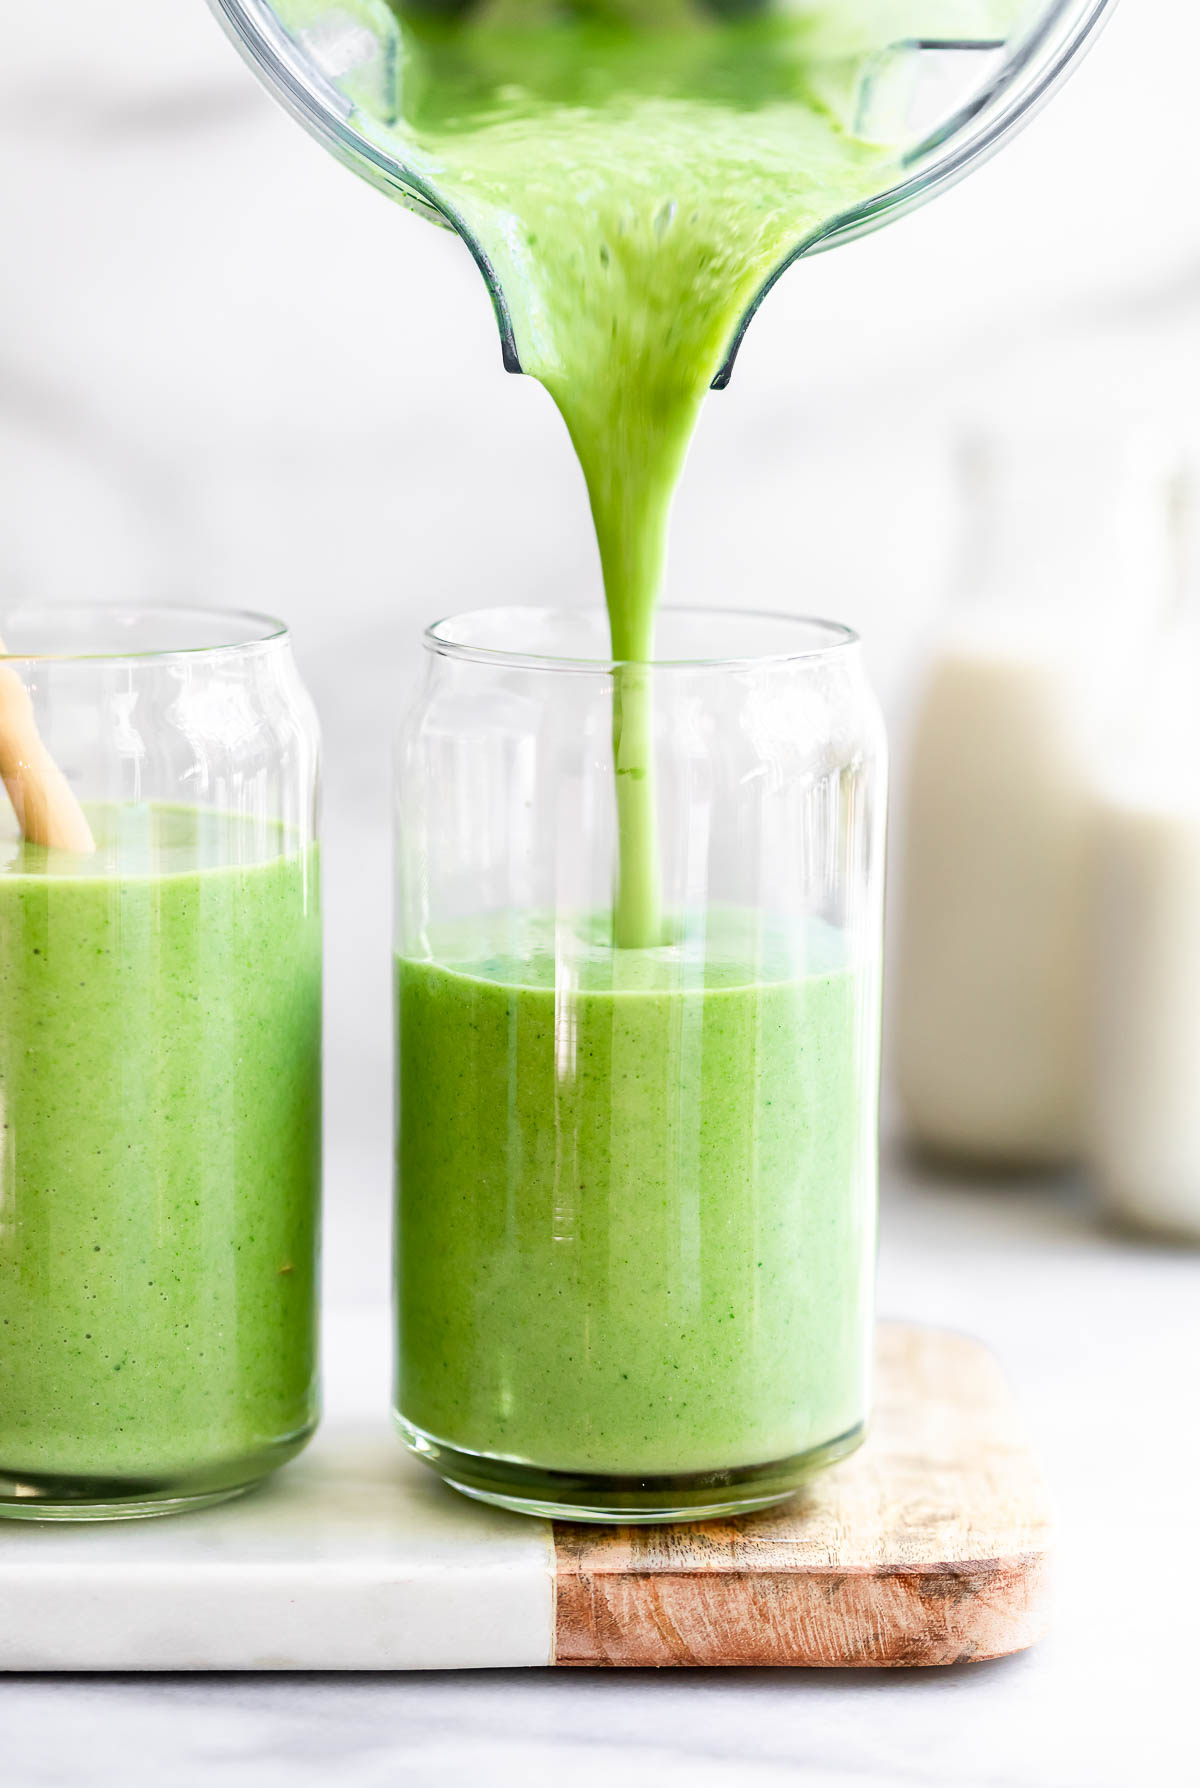 pouring the green smoothie into two glasses